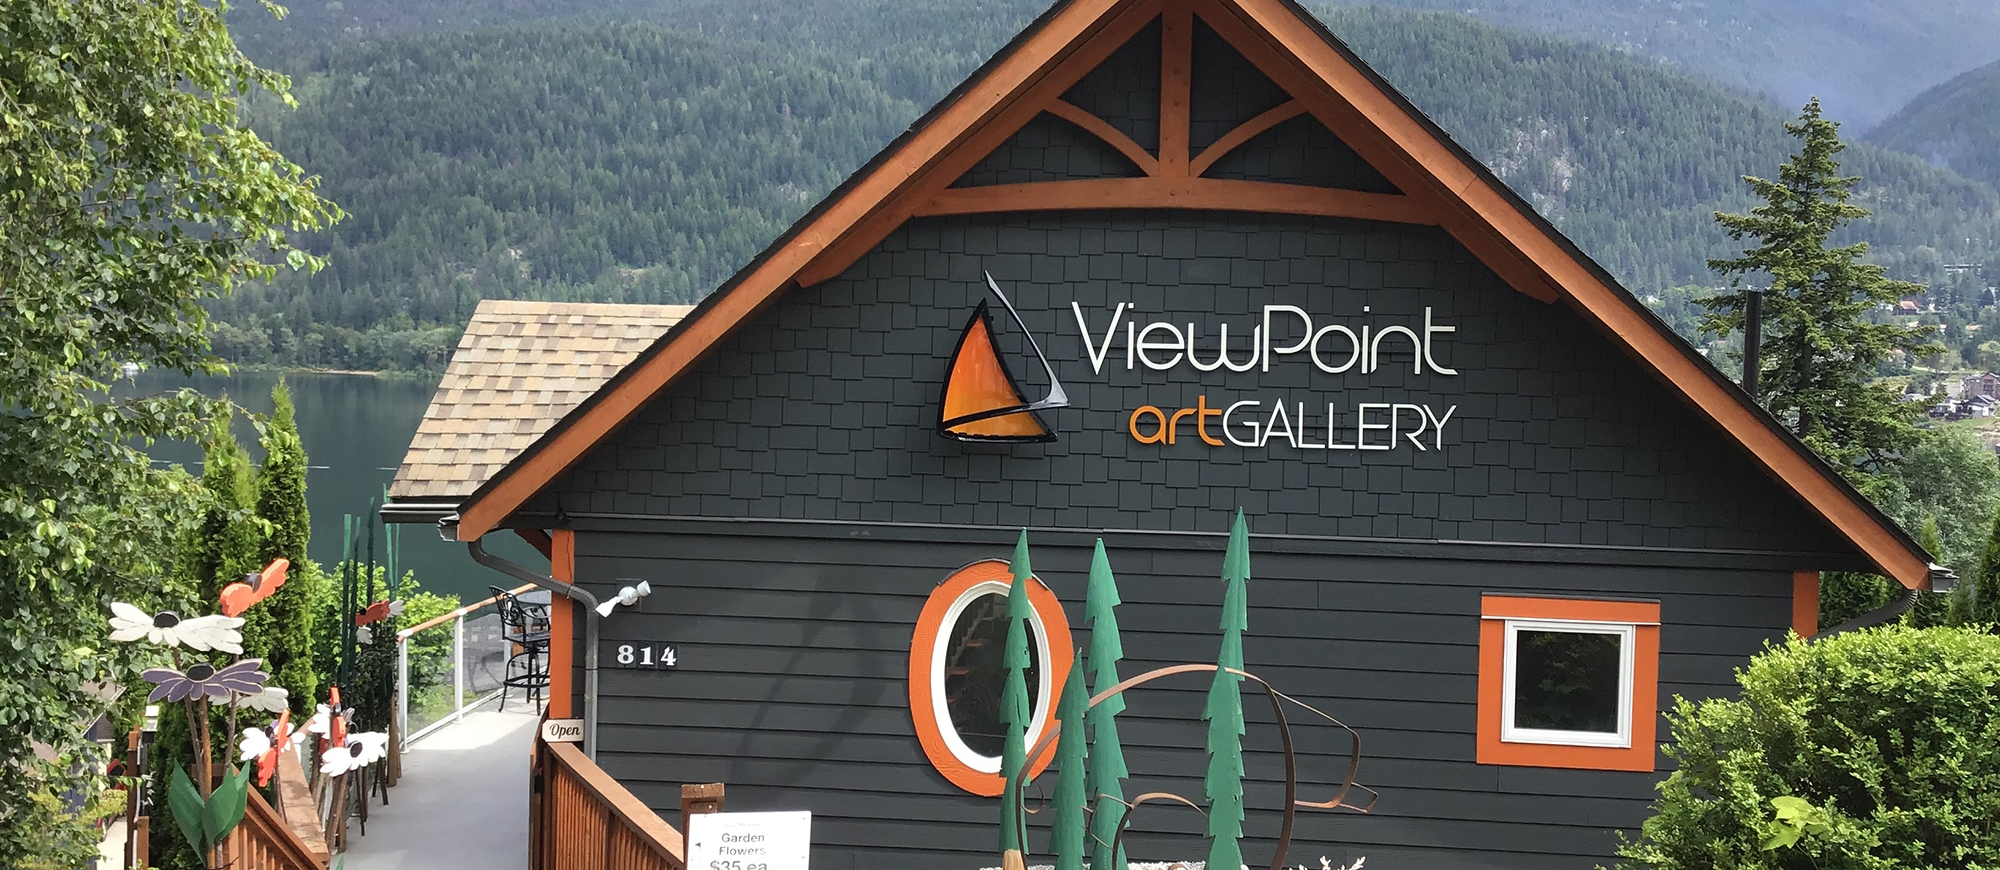 the Viewpoint Art Gallery building sitting above Kootenay Lake with mountains in the background